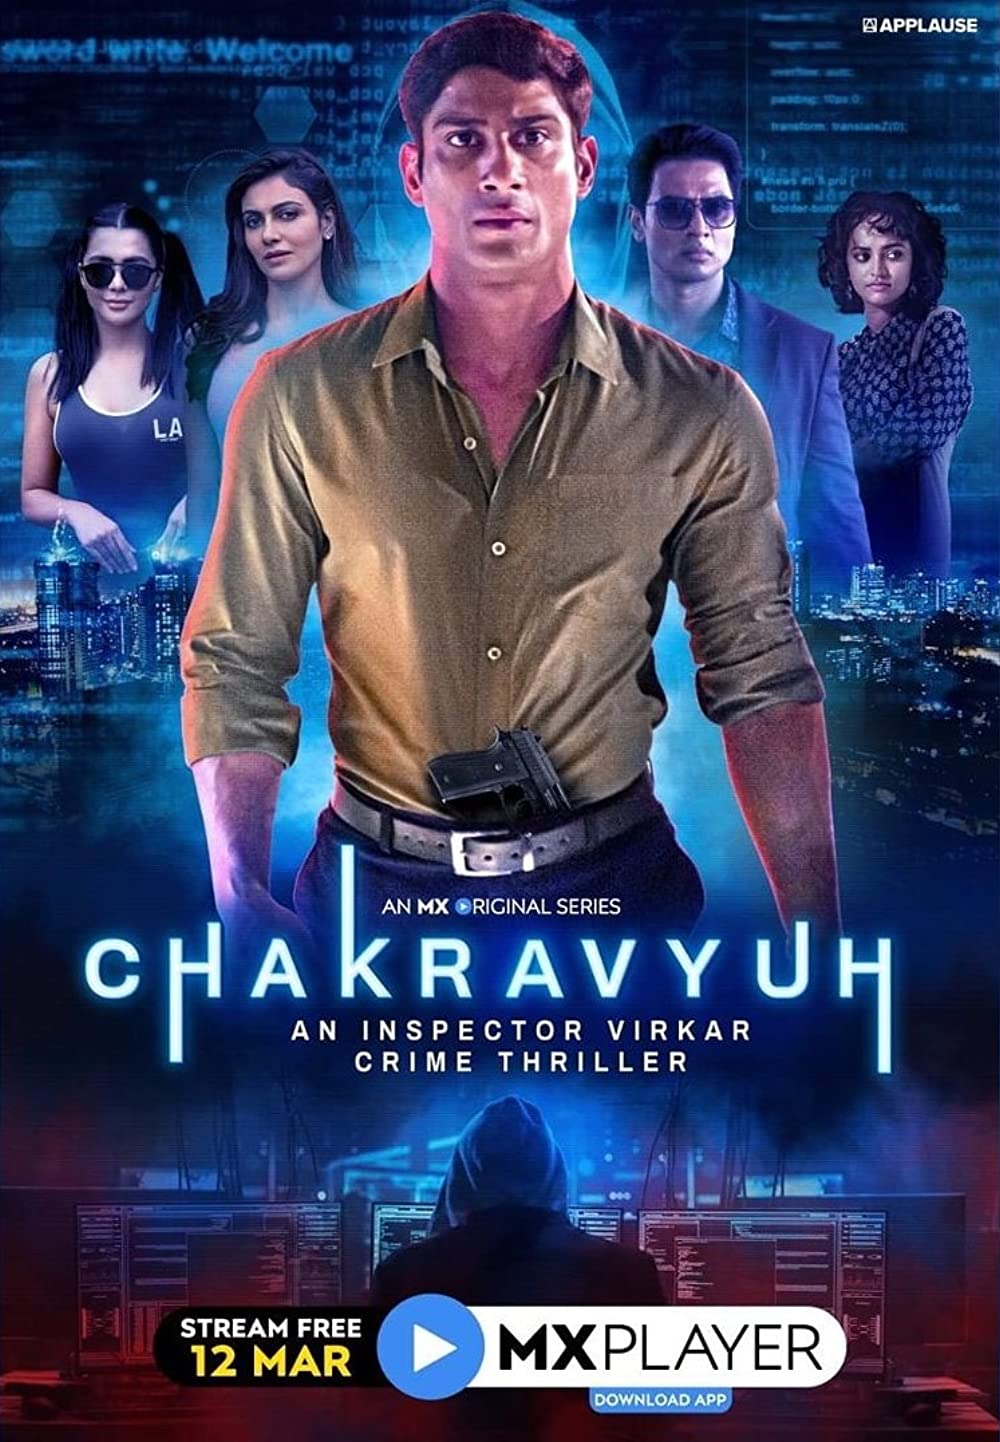 Chakravyuh An Inspector Virkar Crime Thriller 2021 S01 Hindi MX Original Complete Web Series 720p HDRip 1.6GB Download